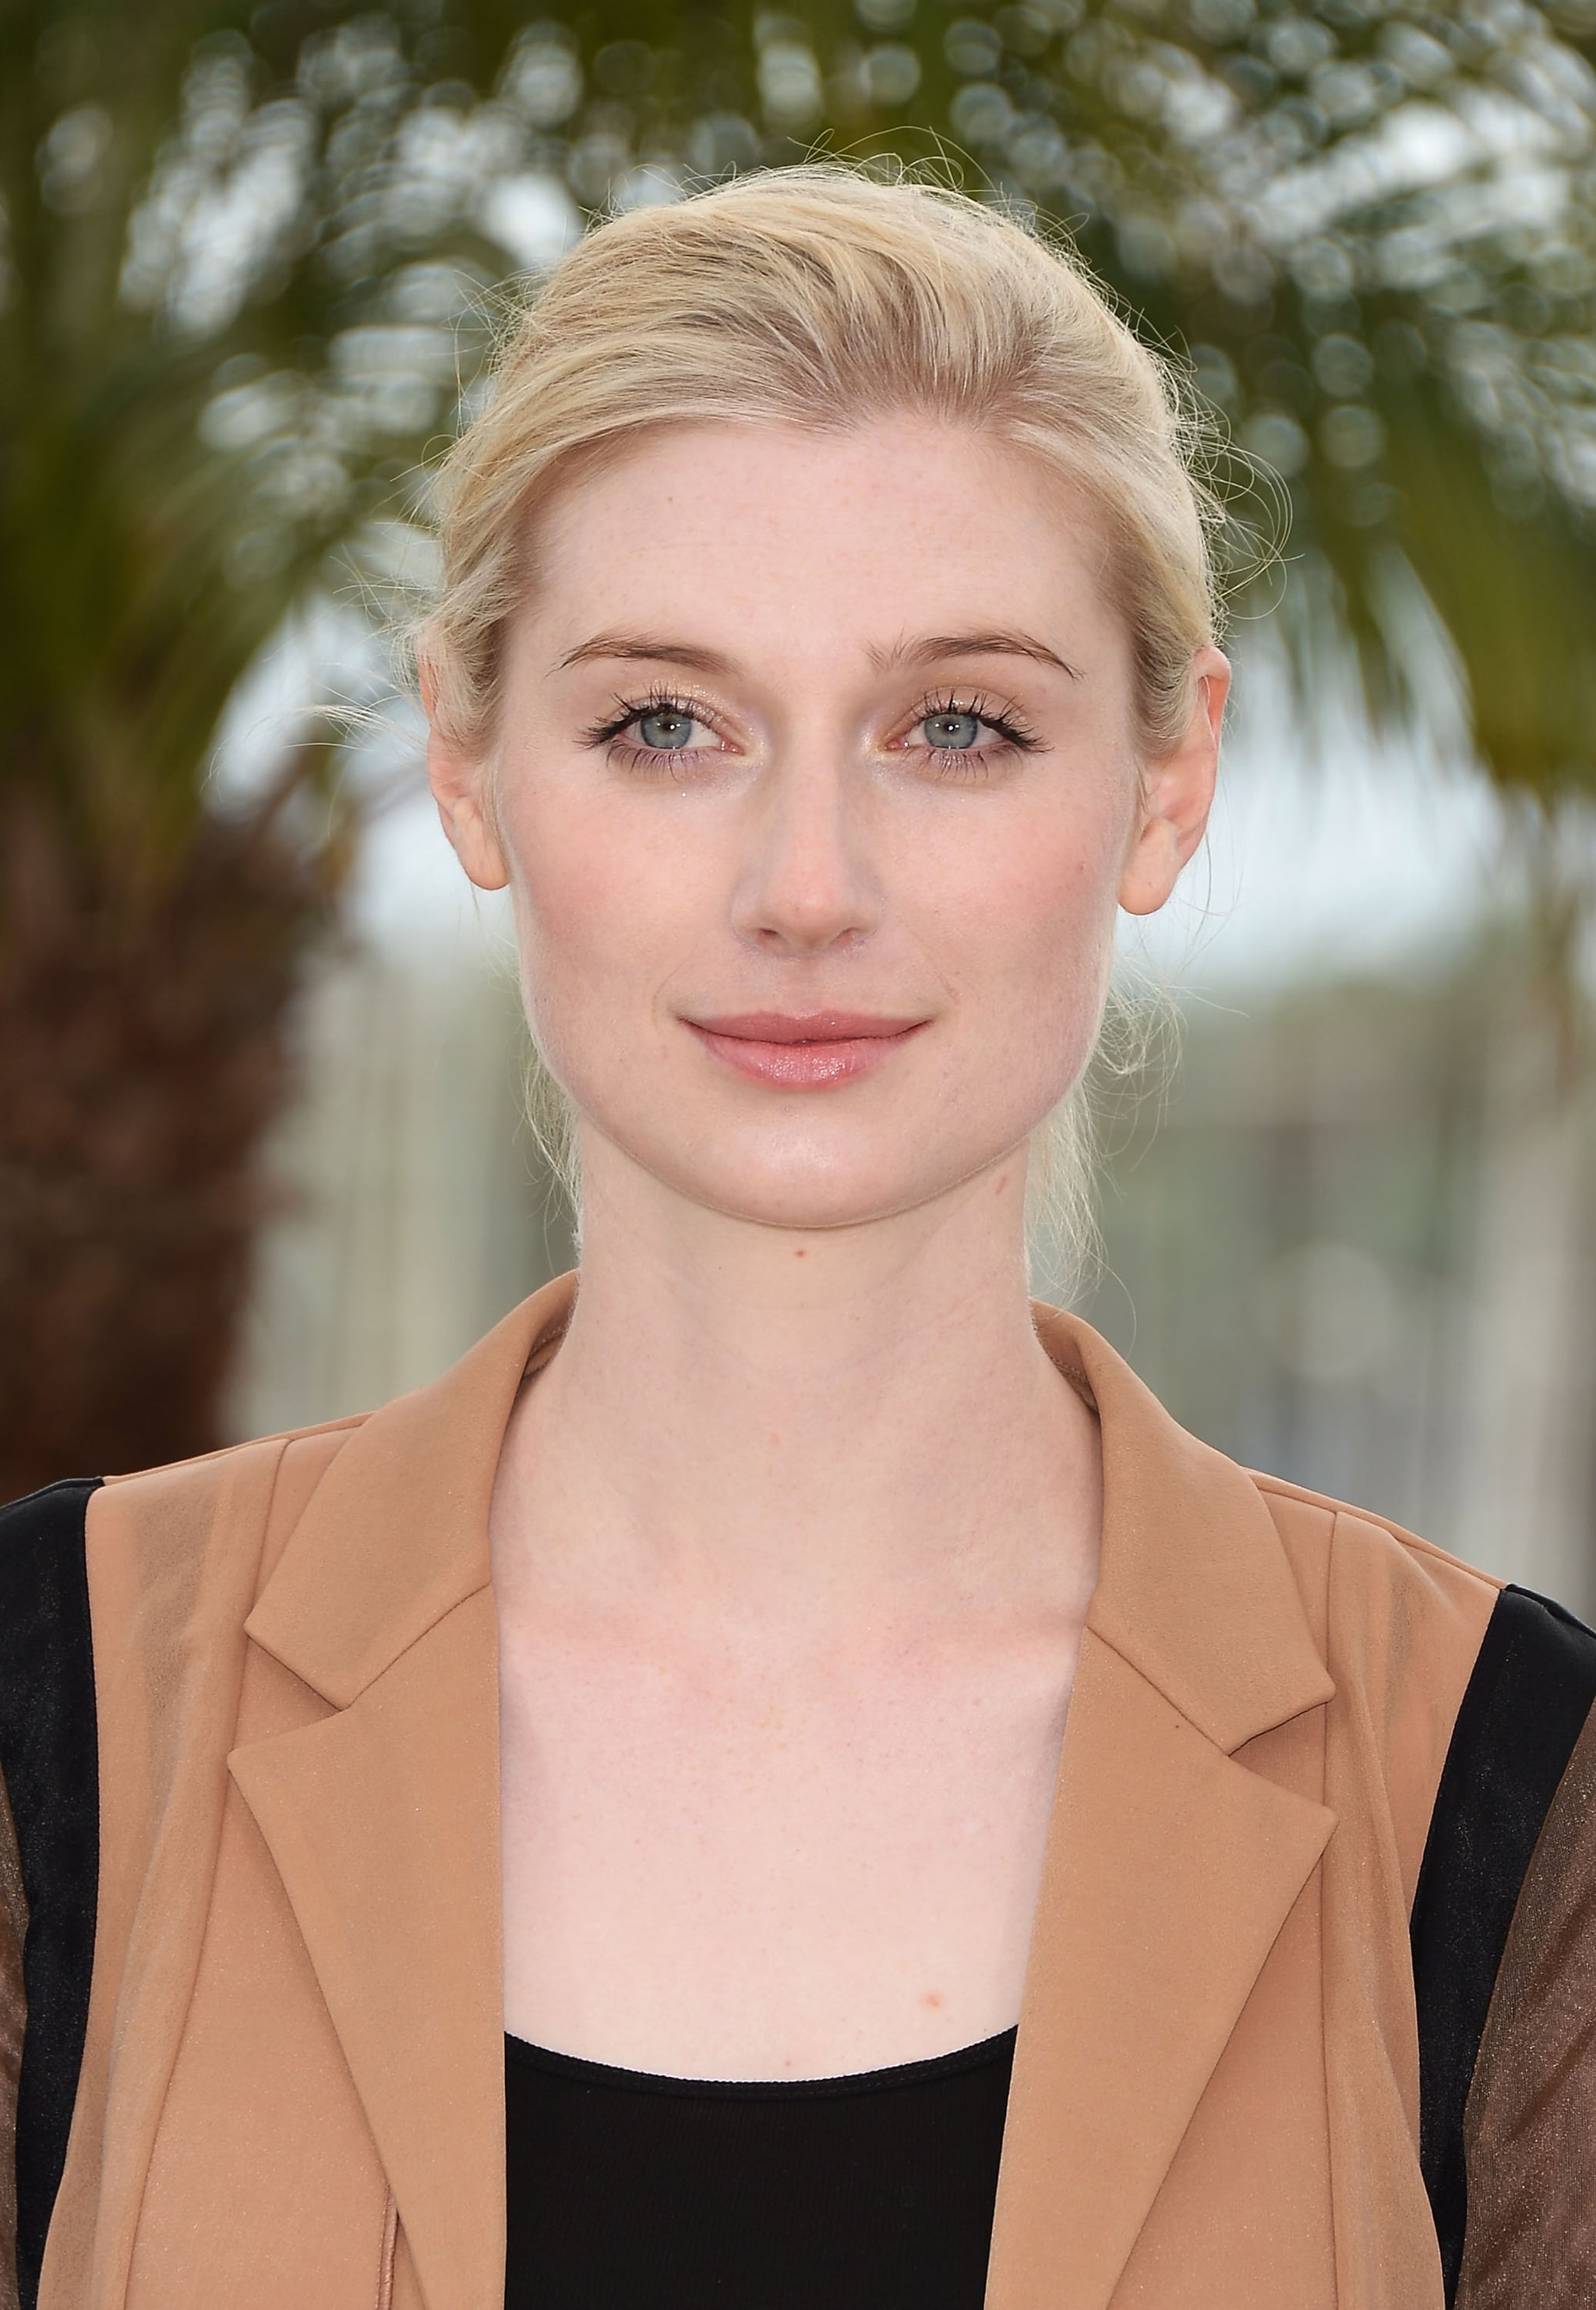 At A Photocall For The Great Gatsby Actress Elizabeth Debicki Swept More Pics See All The Daytime Hair And Makeup From Cannes Popsugar Beauty Photo 23